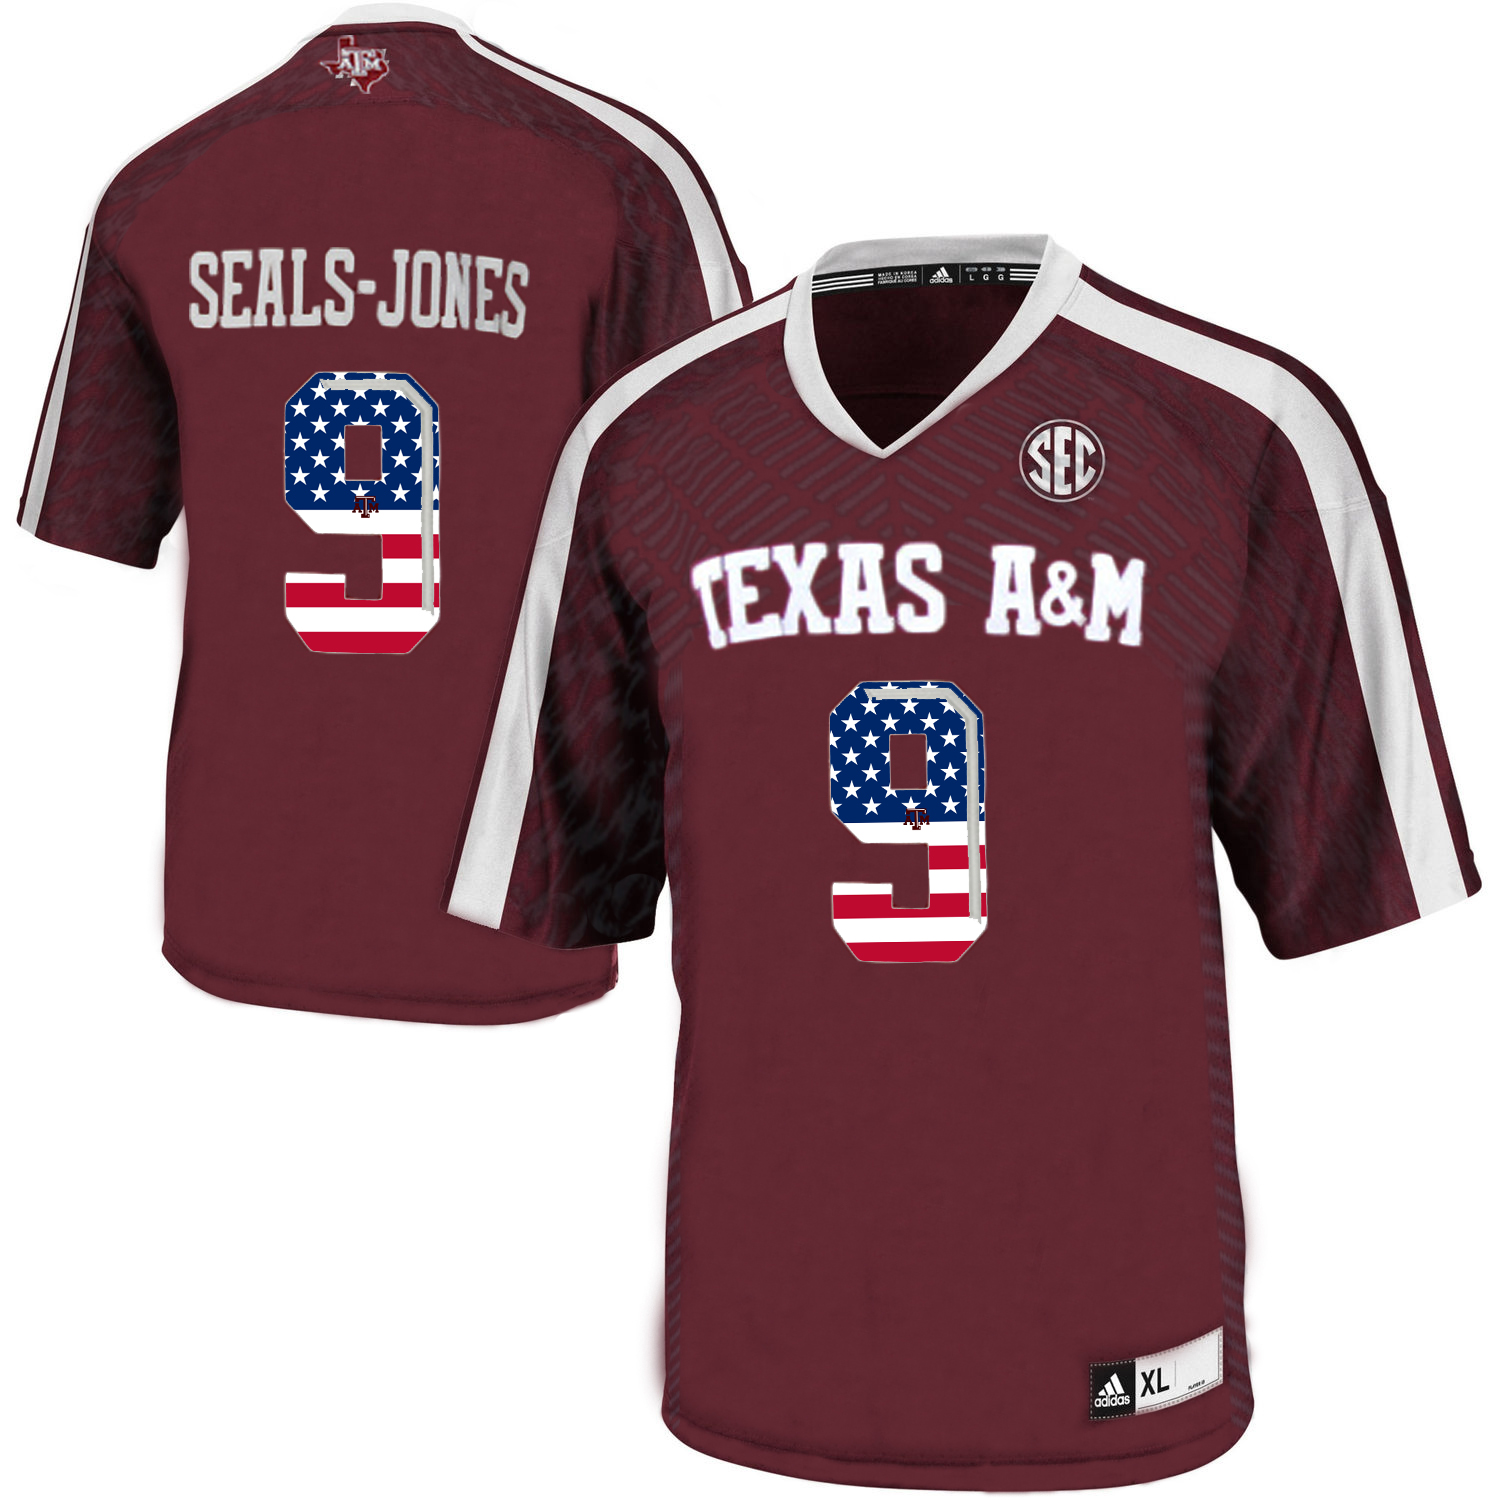 Texas A&M Aggies 9 Ricky Seals Jones Red College Football Jersey